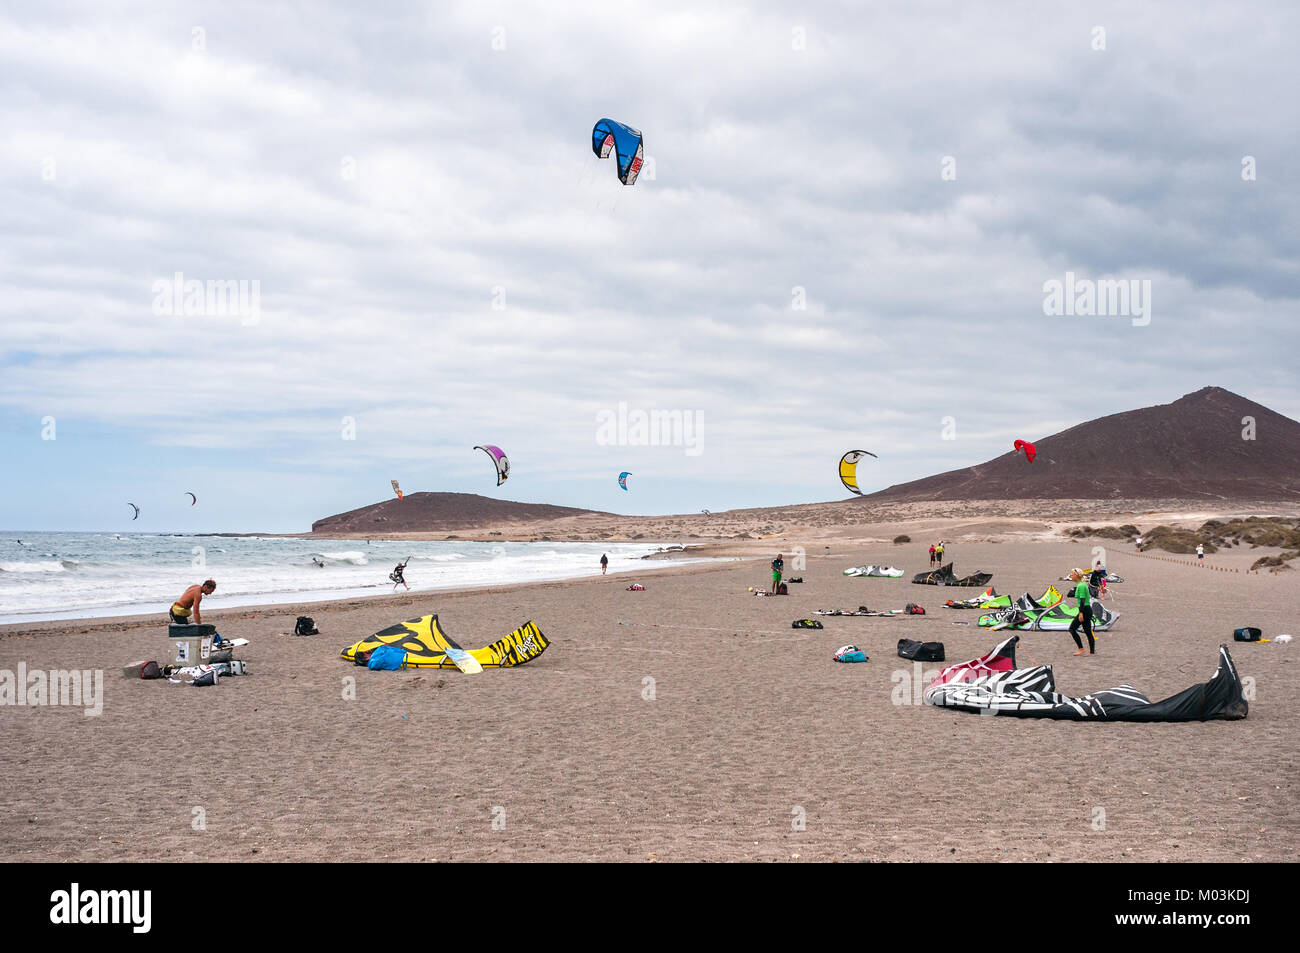 Kitesurfers on El Médano beach on an overcast windy day, Tenerife, Spain - Stock Image